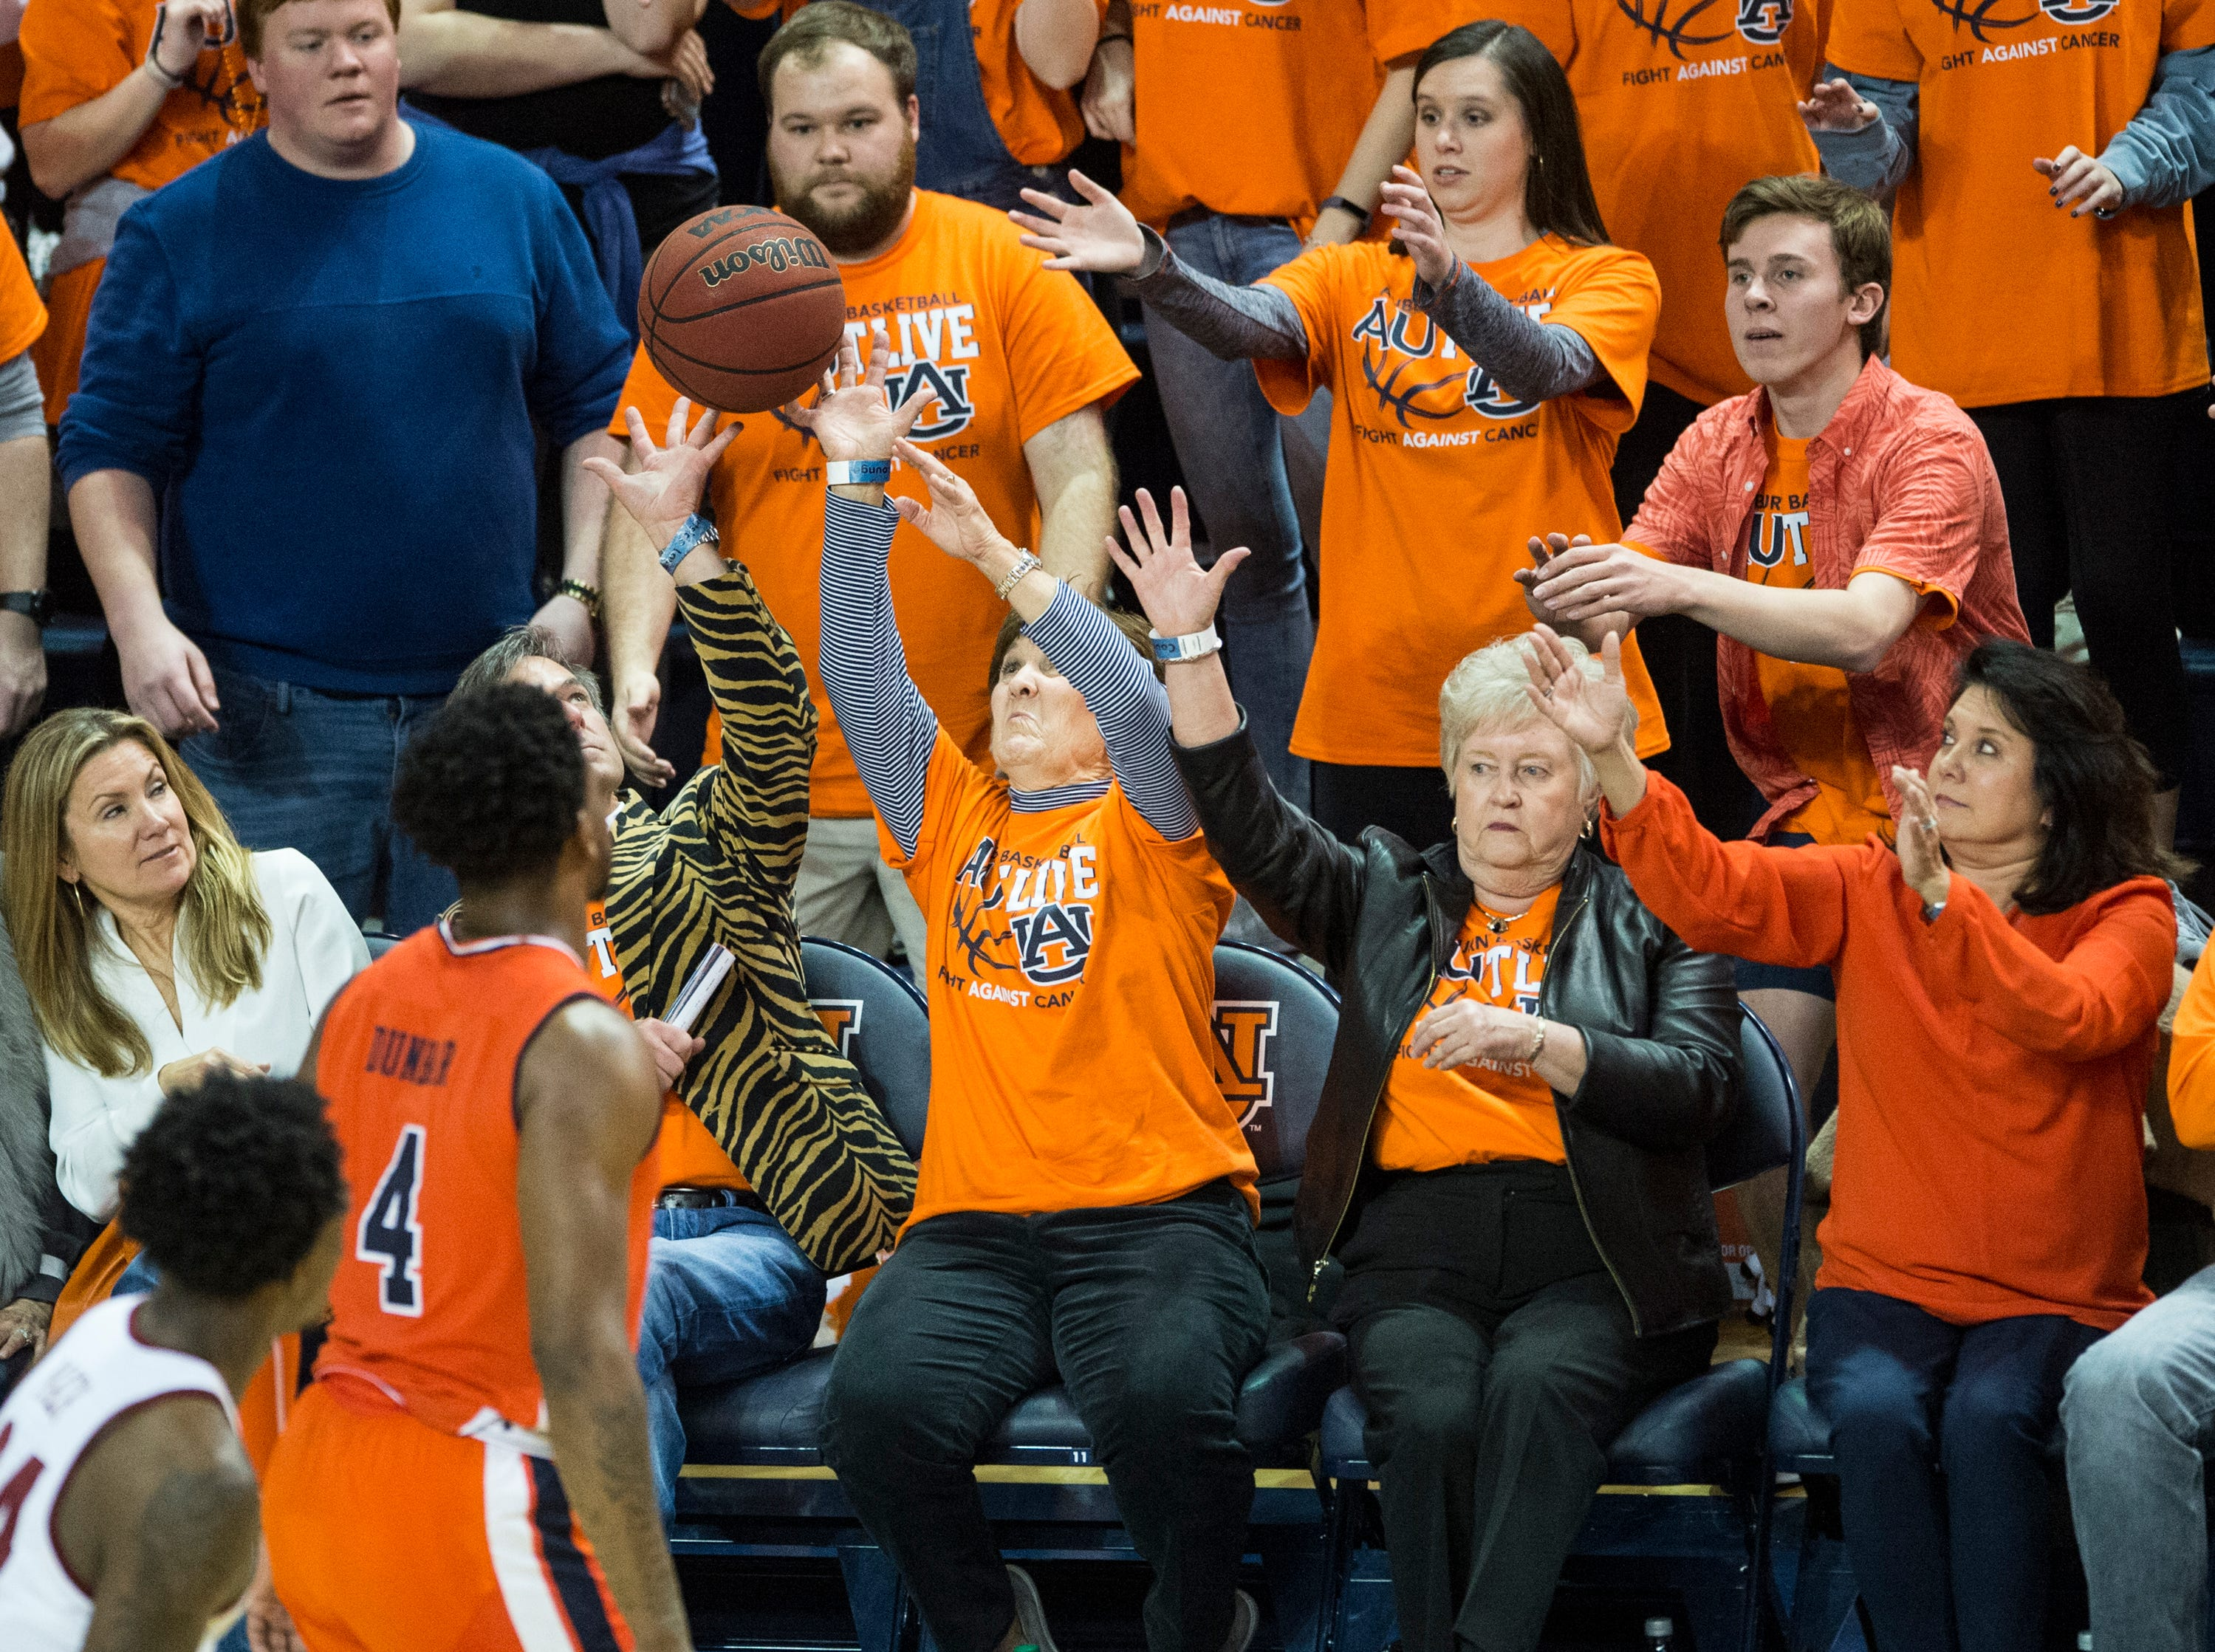 The ball goes into the crowd at Auburn Arena in Auburn, Ala., on Saturday, Feb. 2, 2019. Auburn defeated Alabama 84-63.